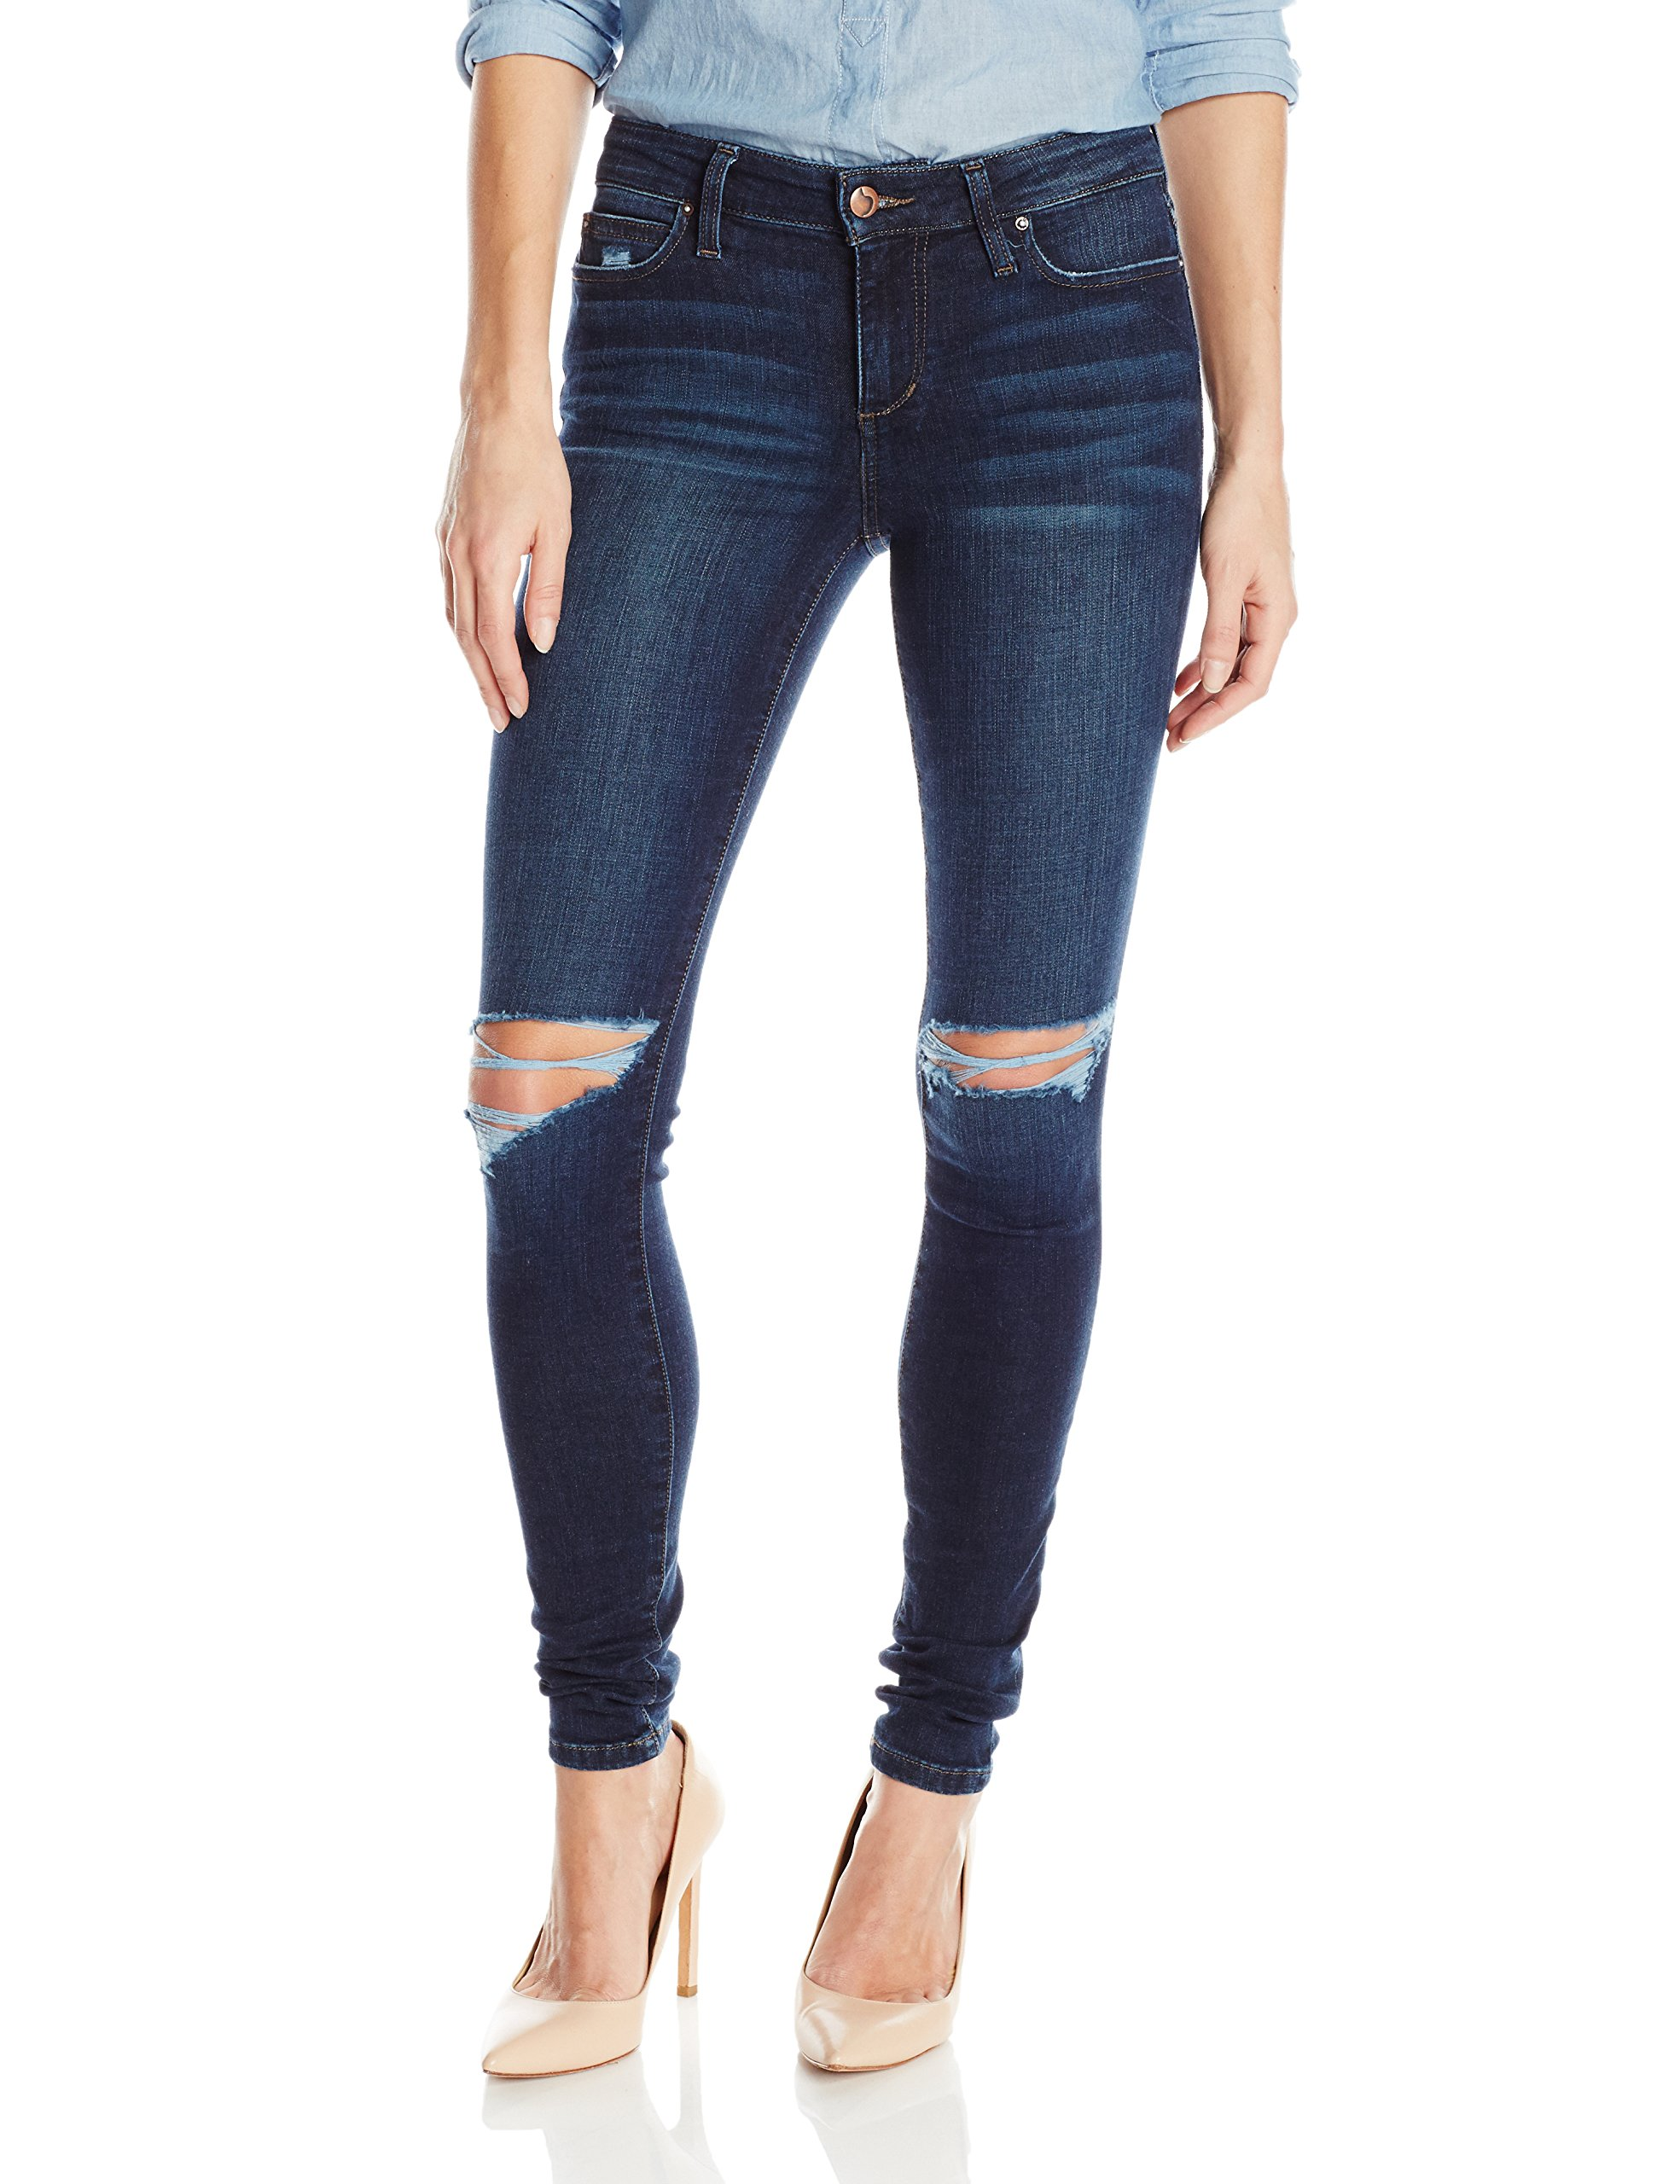 Joe's Jeans Women's Flawless Icon Midrise Skinny Jean, Kennide, 30 by Joe's Jeans